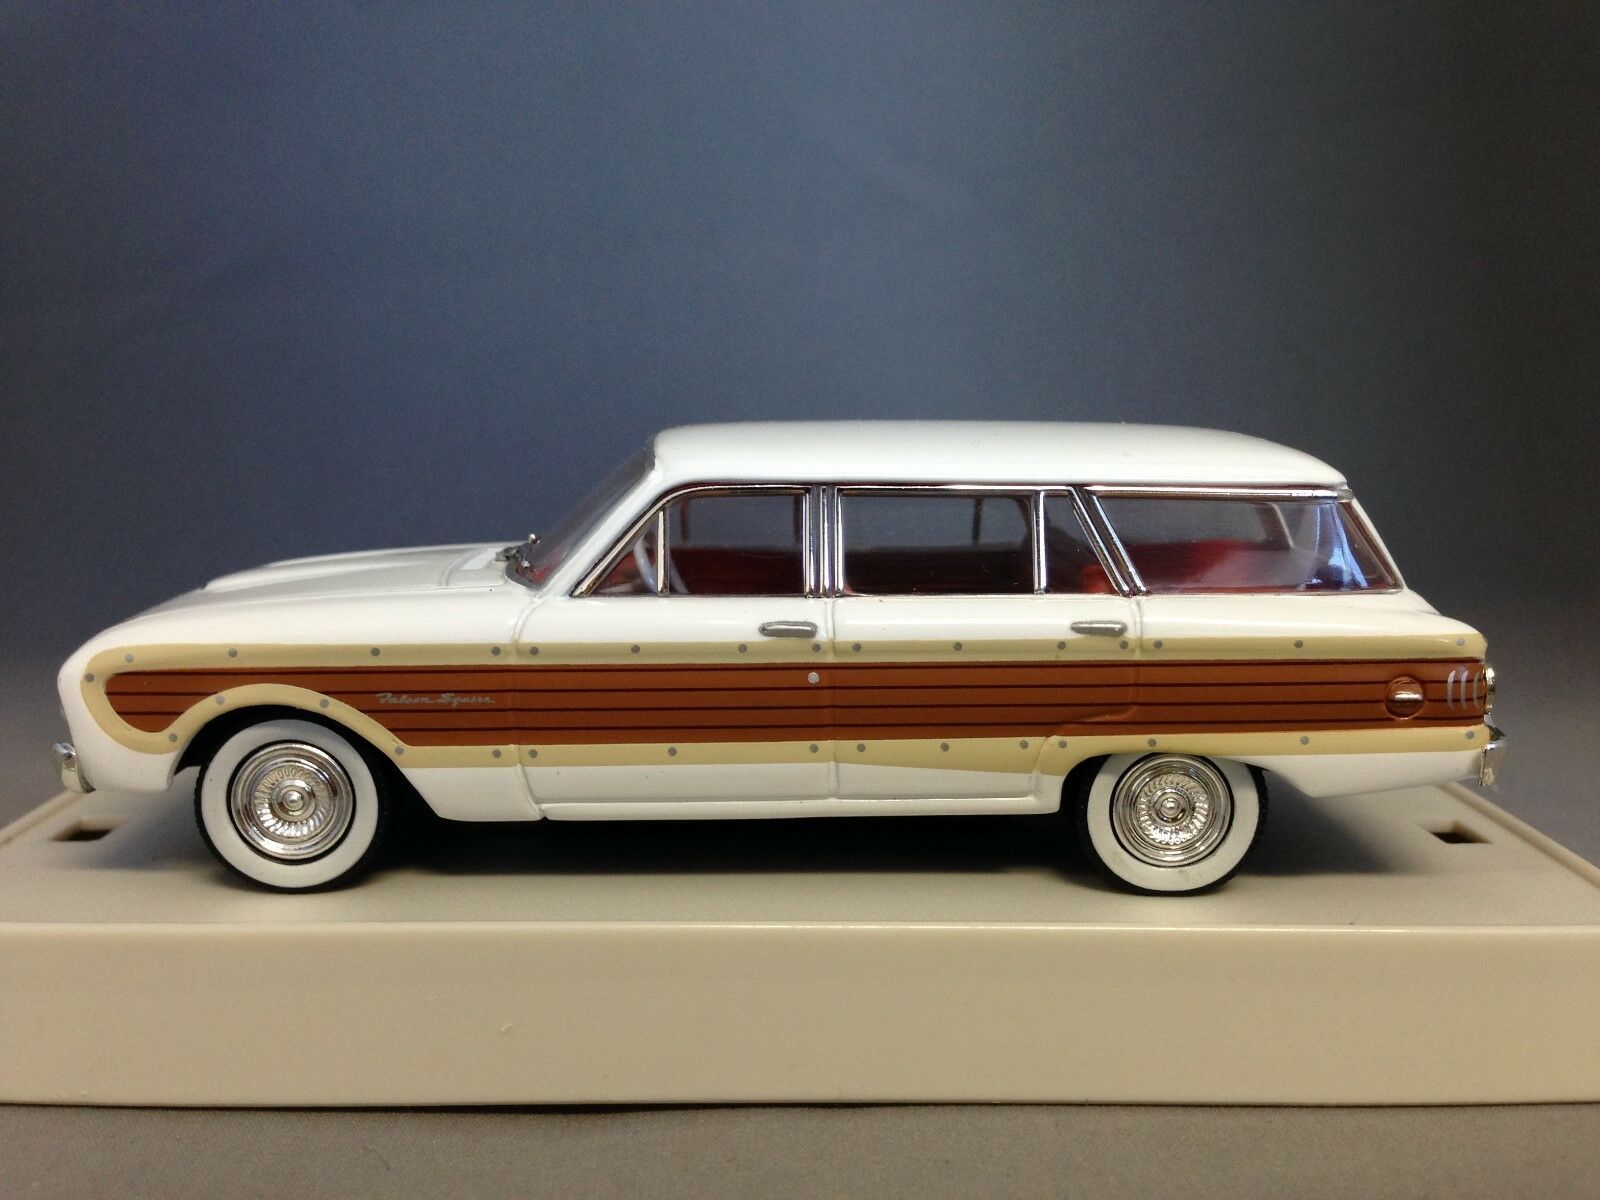 TRAX TR38  Ford XL Falcon Squire - Merino blanc  with marron fake bois panels  populaire